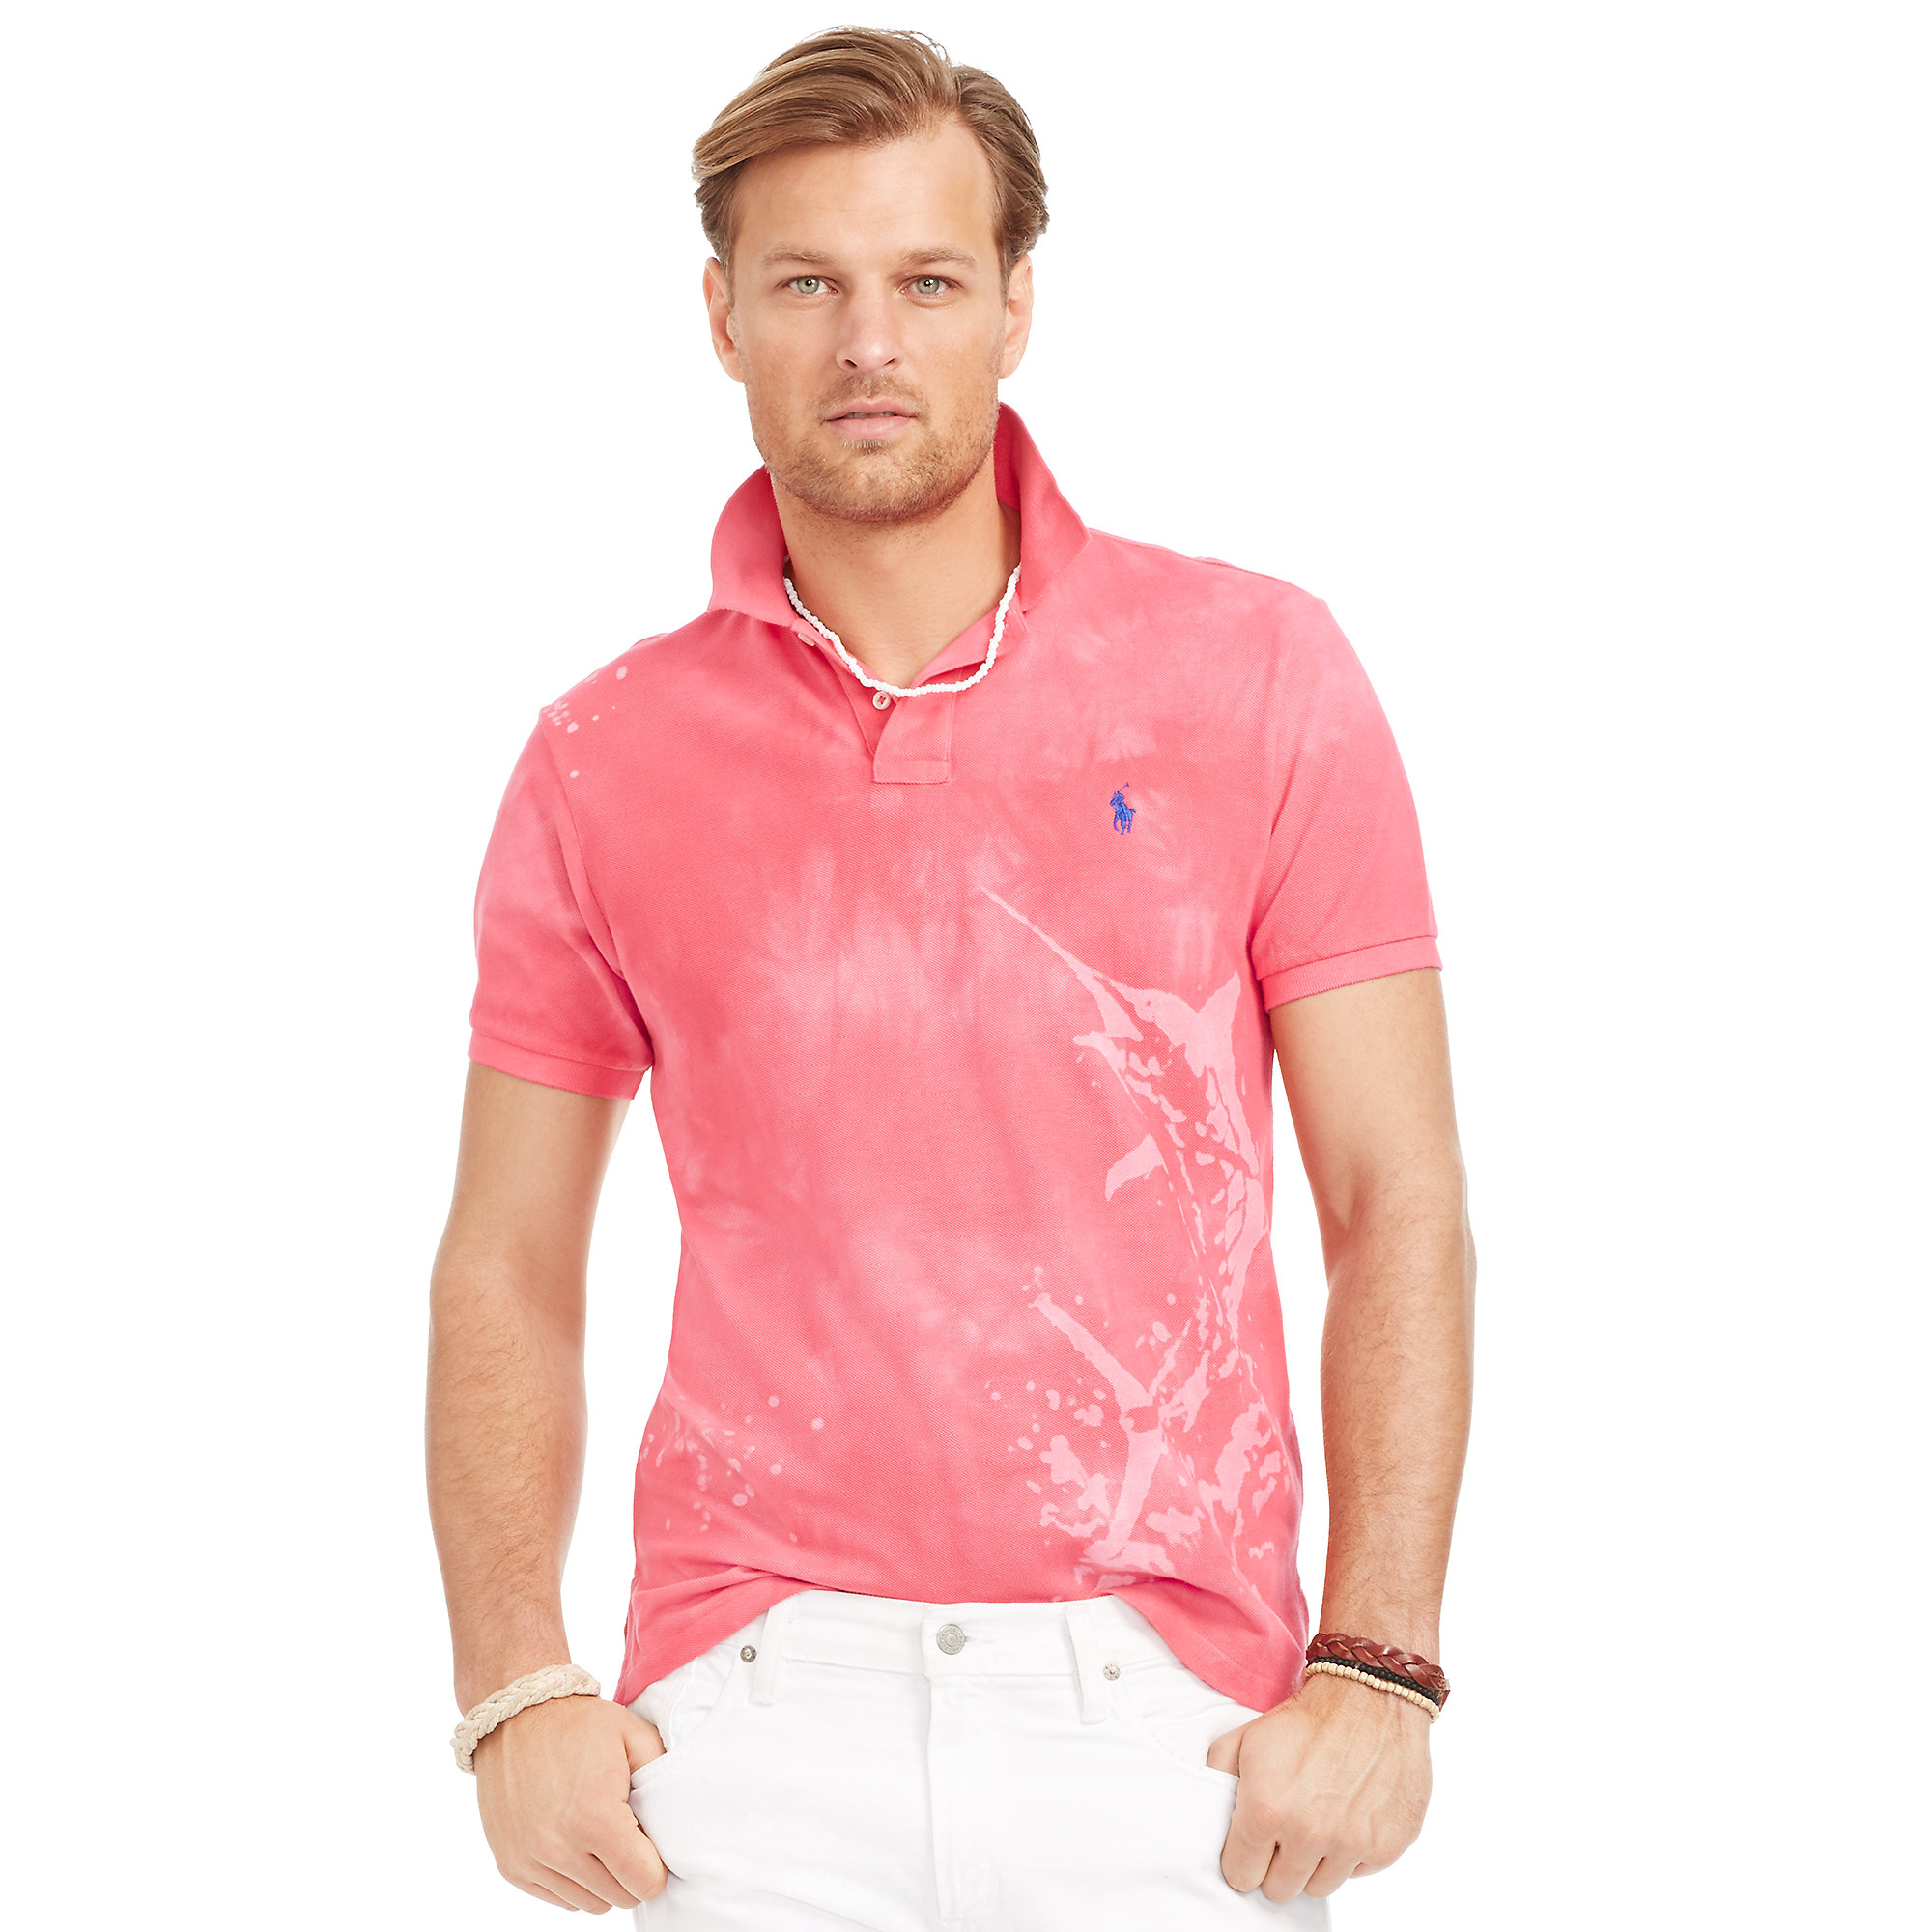 Free shipping BOTH ways on mens pink polo shirts, from our vast selection of styles. Fast delivery, and 24/7/ real-person service with a smile. Click or call